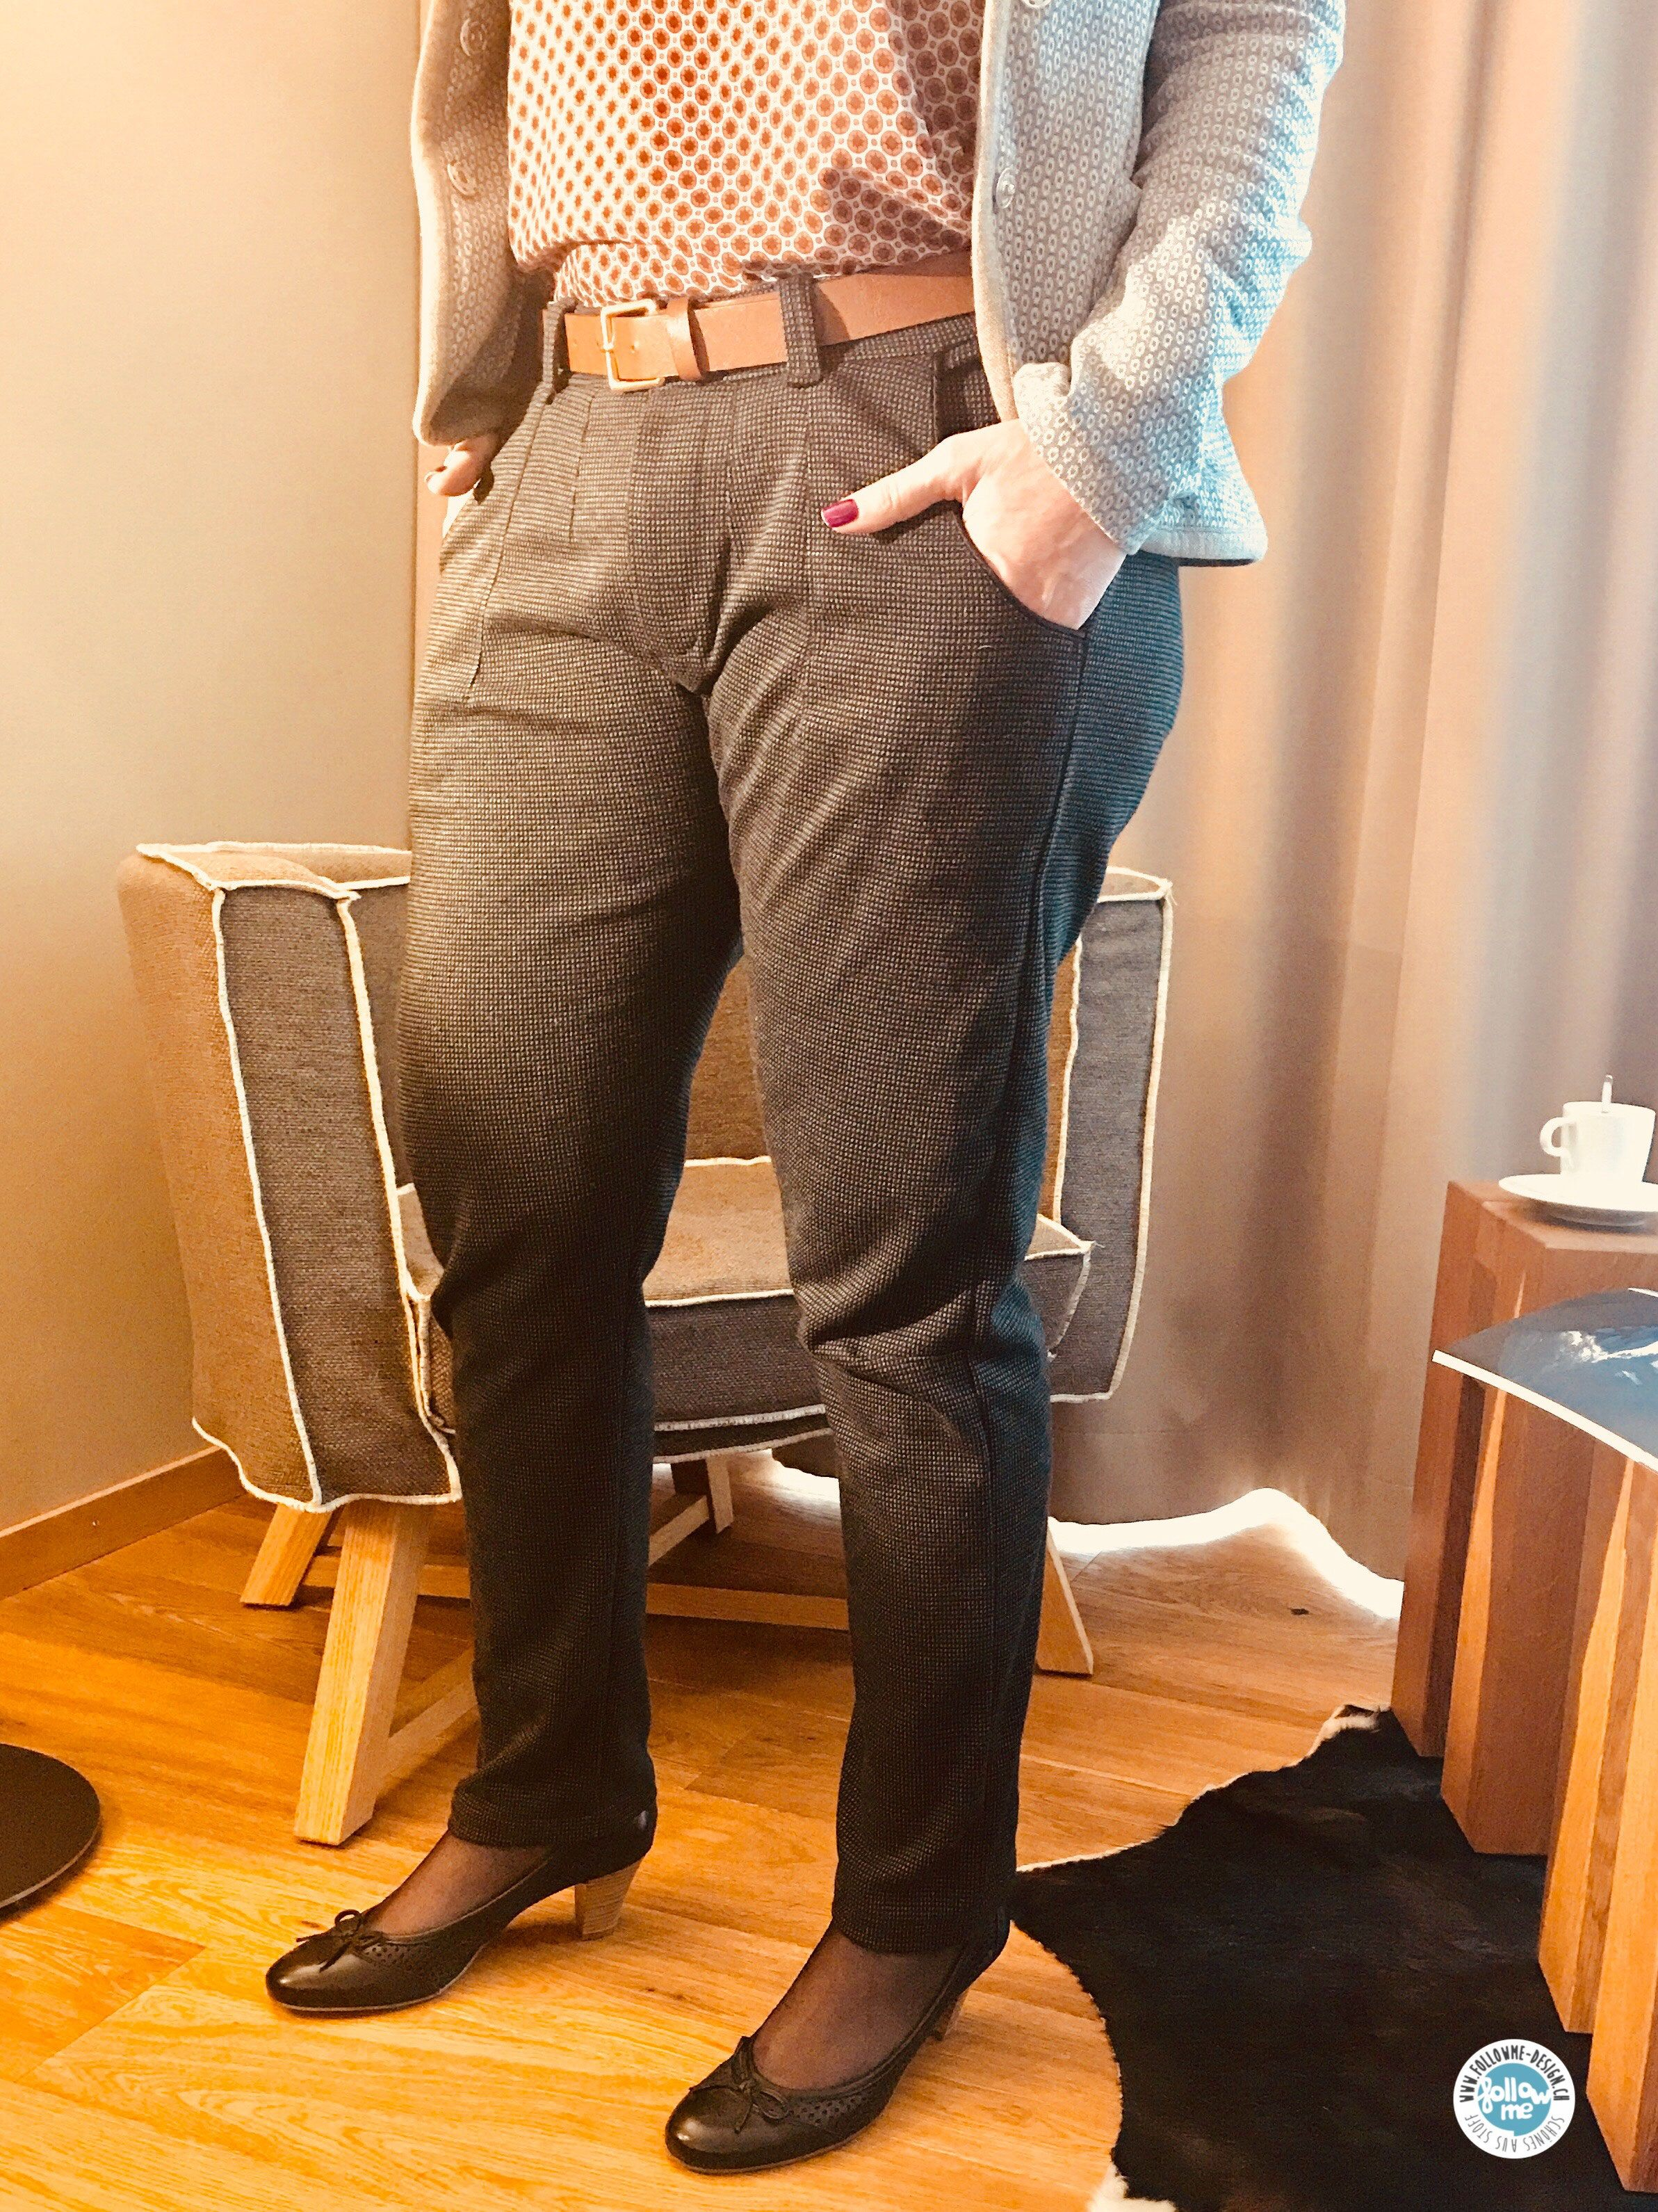 Hose Norma Jill - Tapered Fit Pant Schnittmuster und ausführliche ...